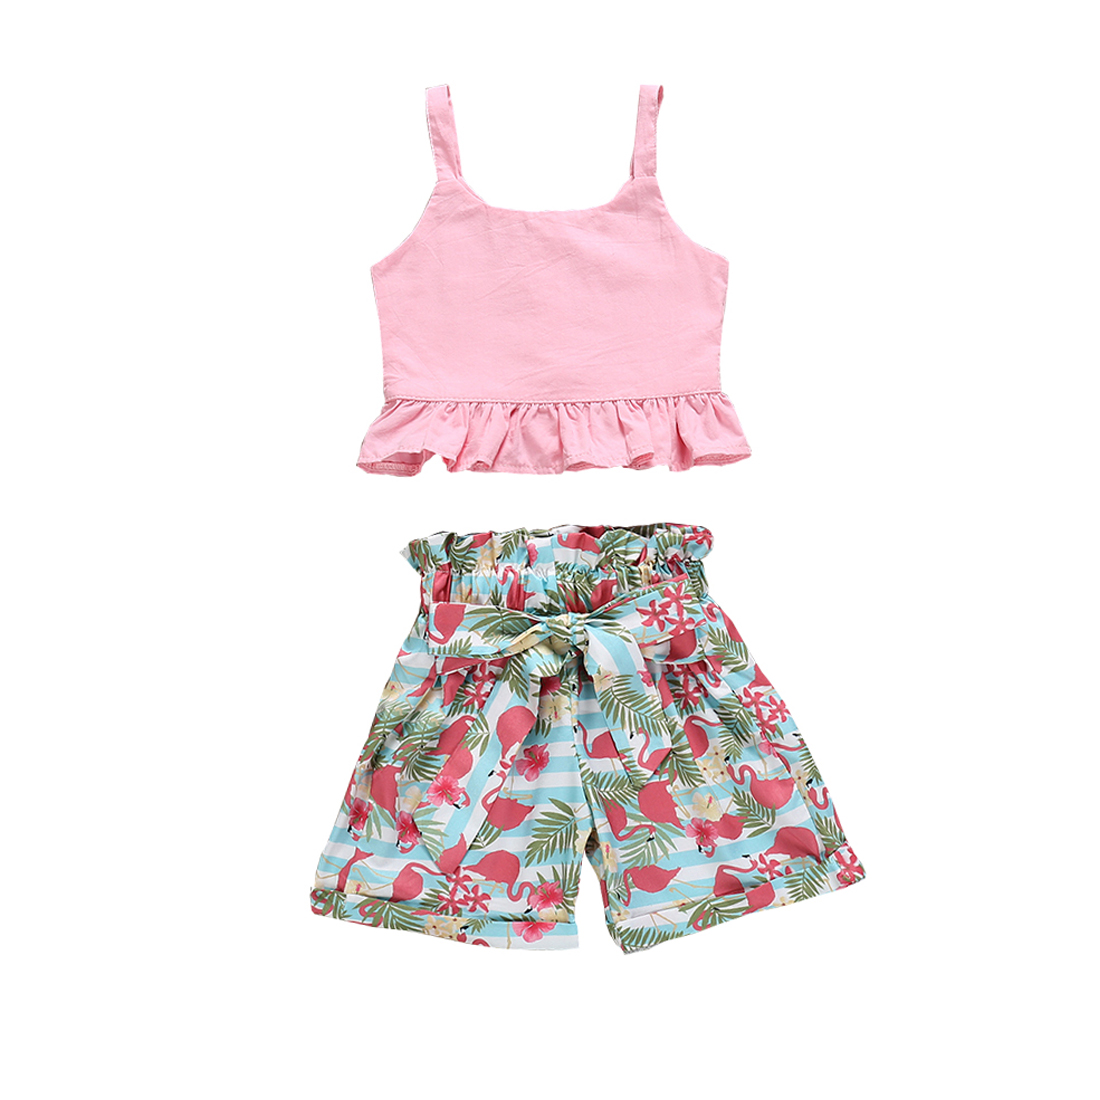 2019 Newest Style Toddler Kid Baby Girl Spring Summer Clothes Strap Solid Tops Flamingo Shorts Outfit Sunsuit Set 2-6years Terrific Value